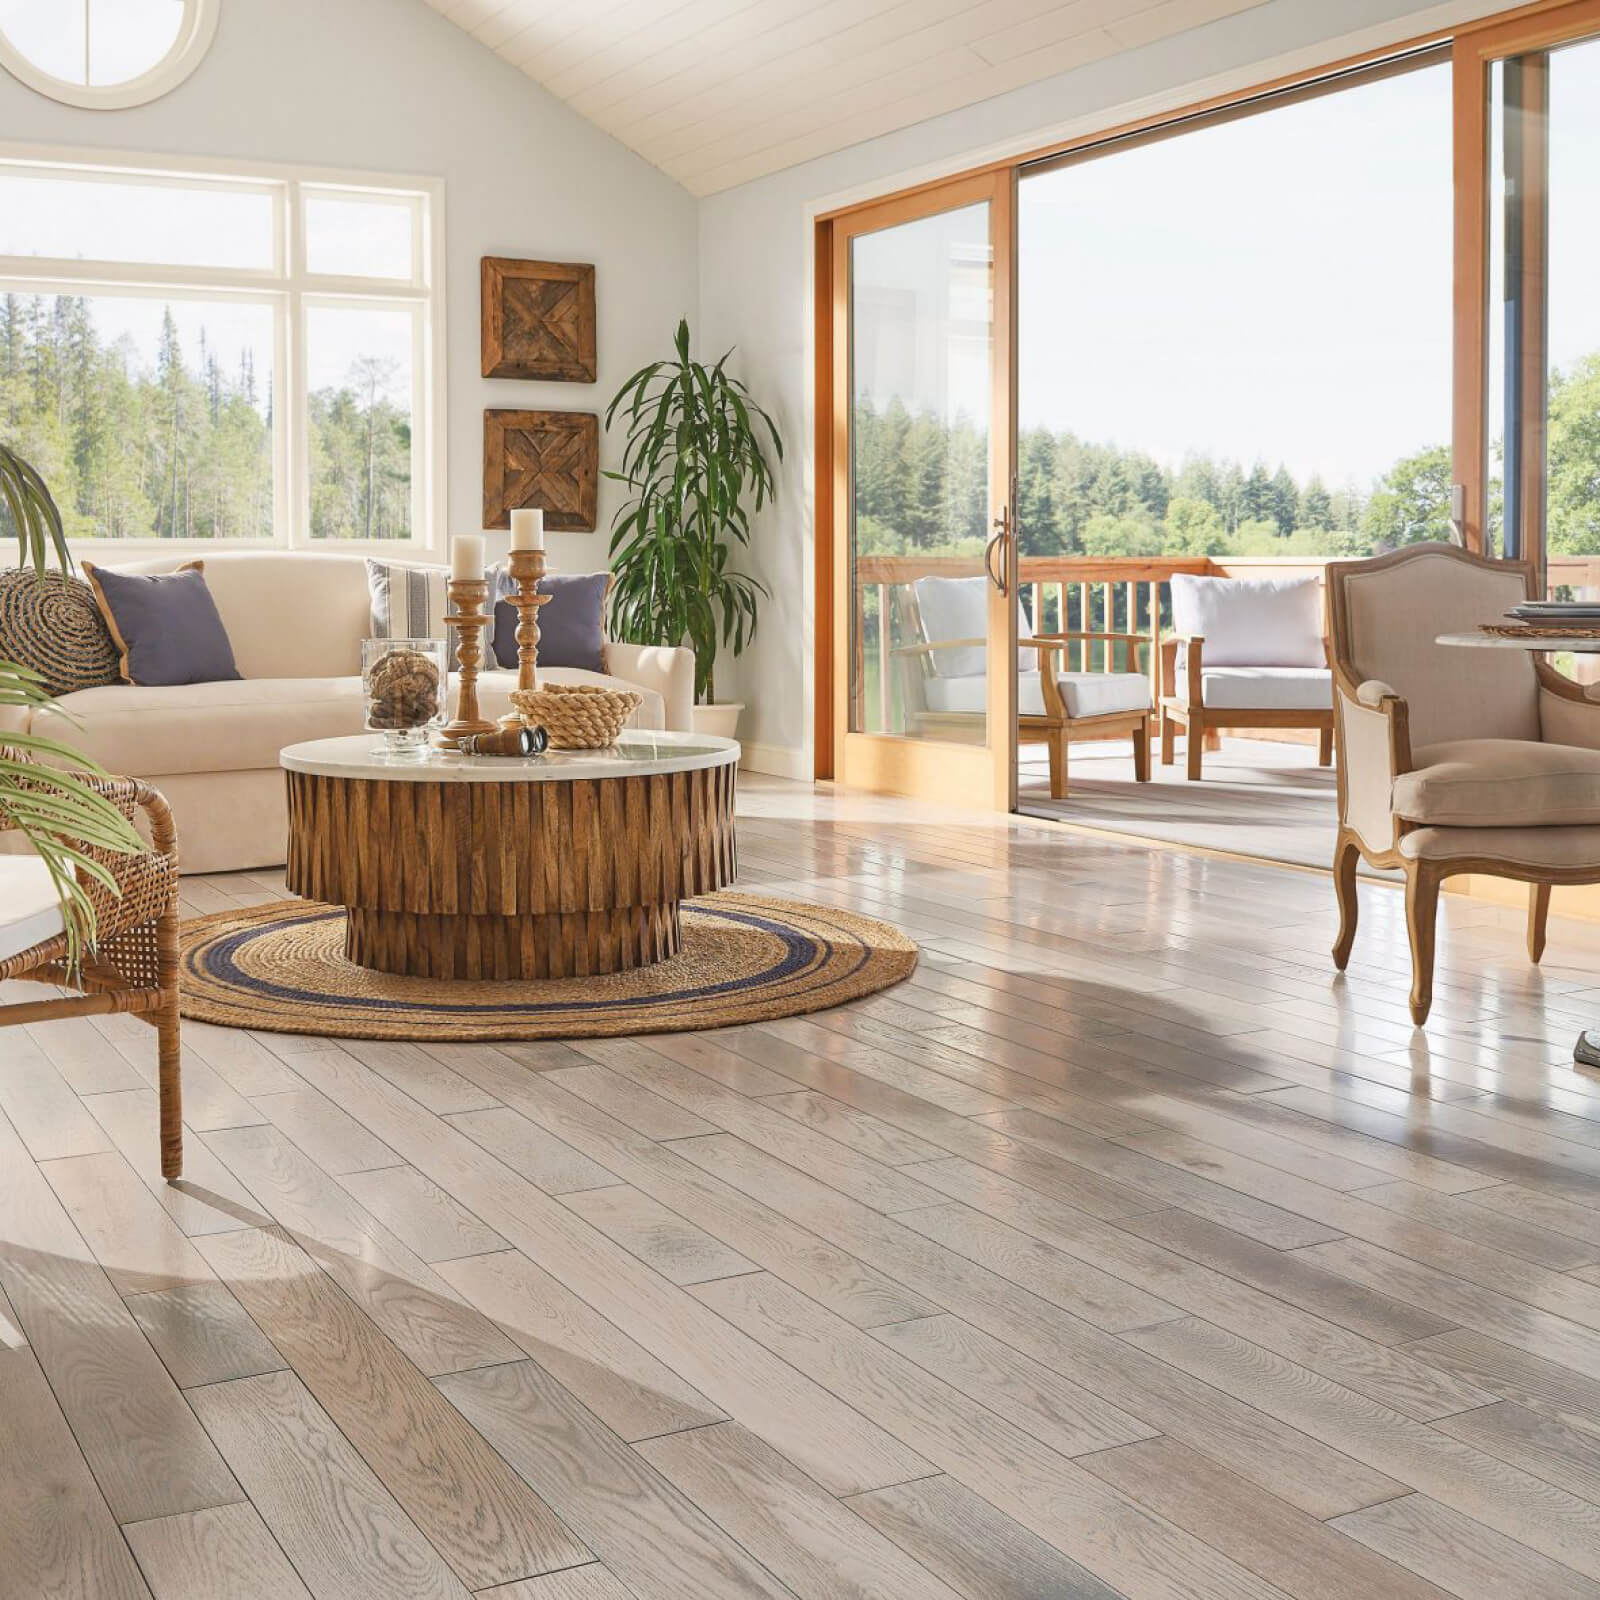 Hardwood flooring in living room | Custom Floors